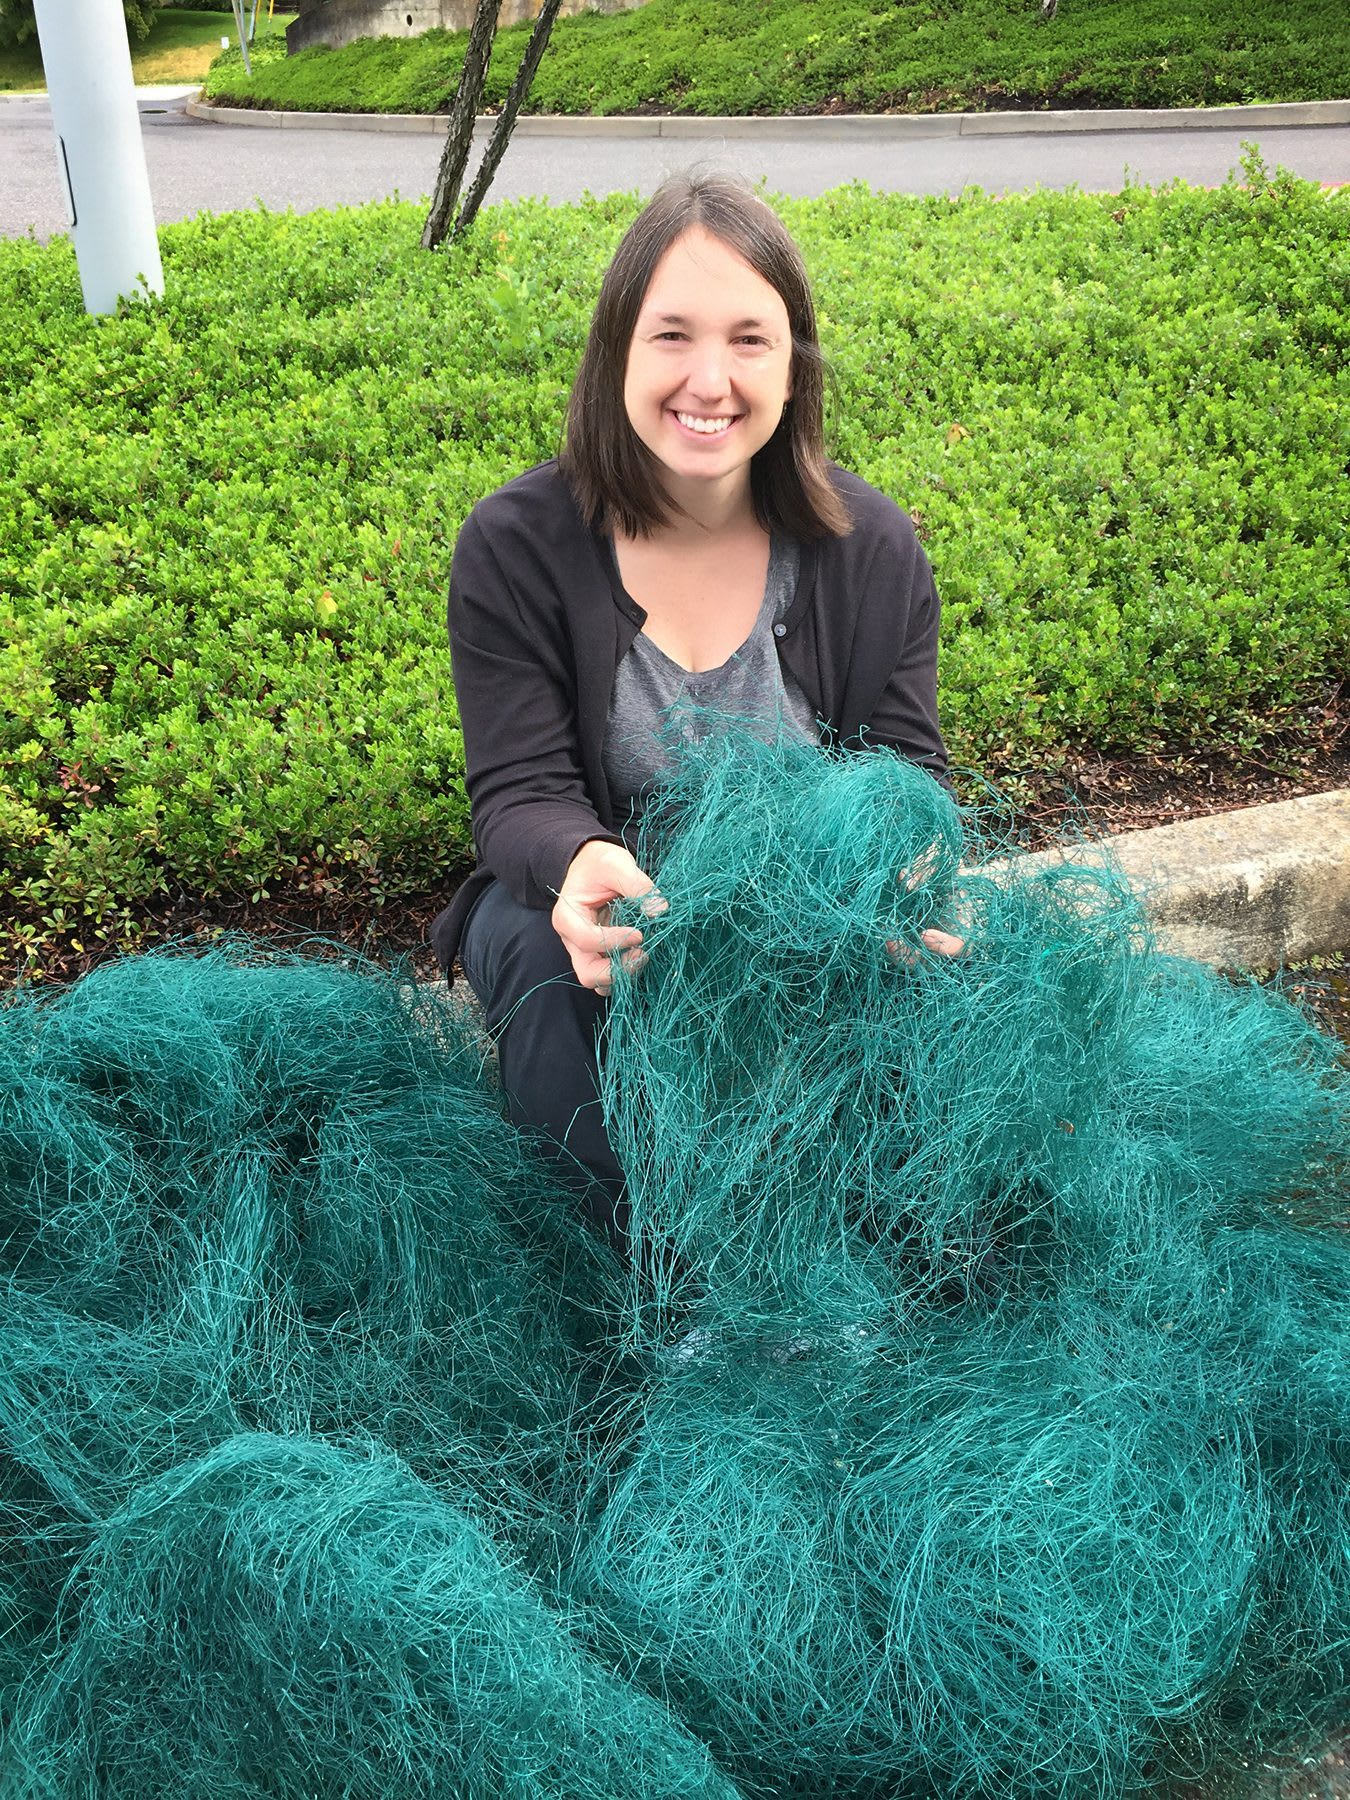 Woman holding green net and smiling, Kelli George, adidas, employee, plastic waste, materials, innovation